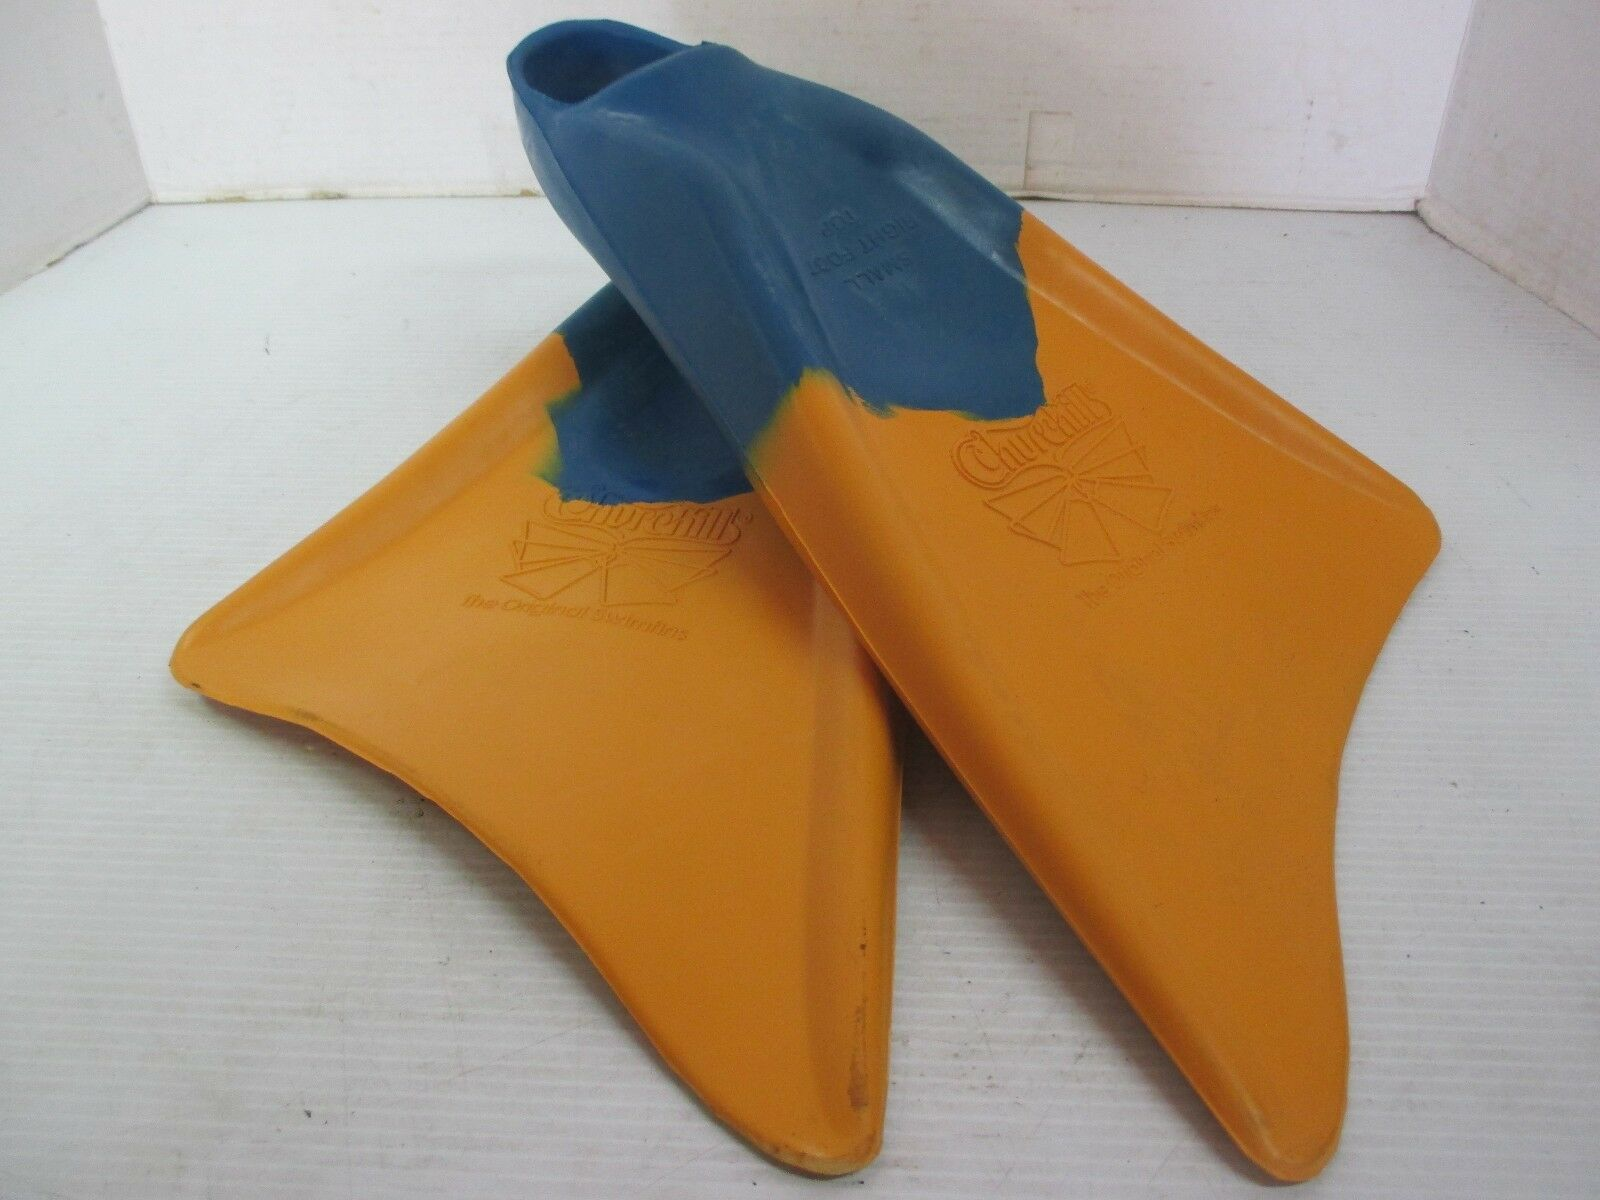 Chur ll  The Original Swim-fins   Flippers, Diving, Swimming Gear Small  hottest new styles